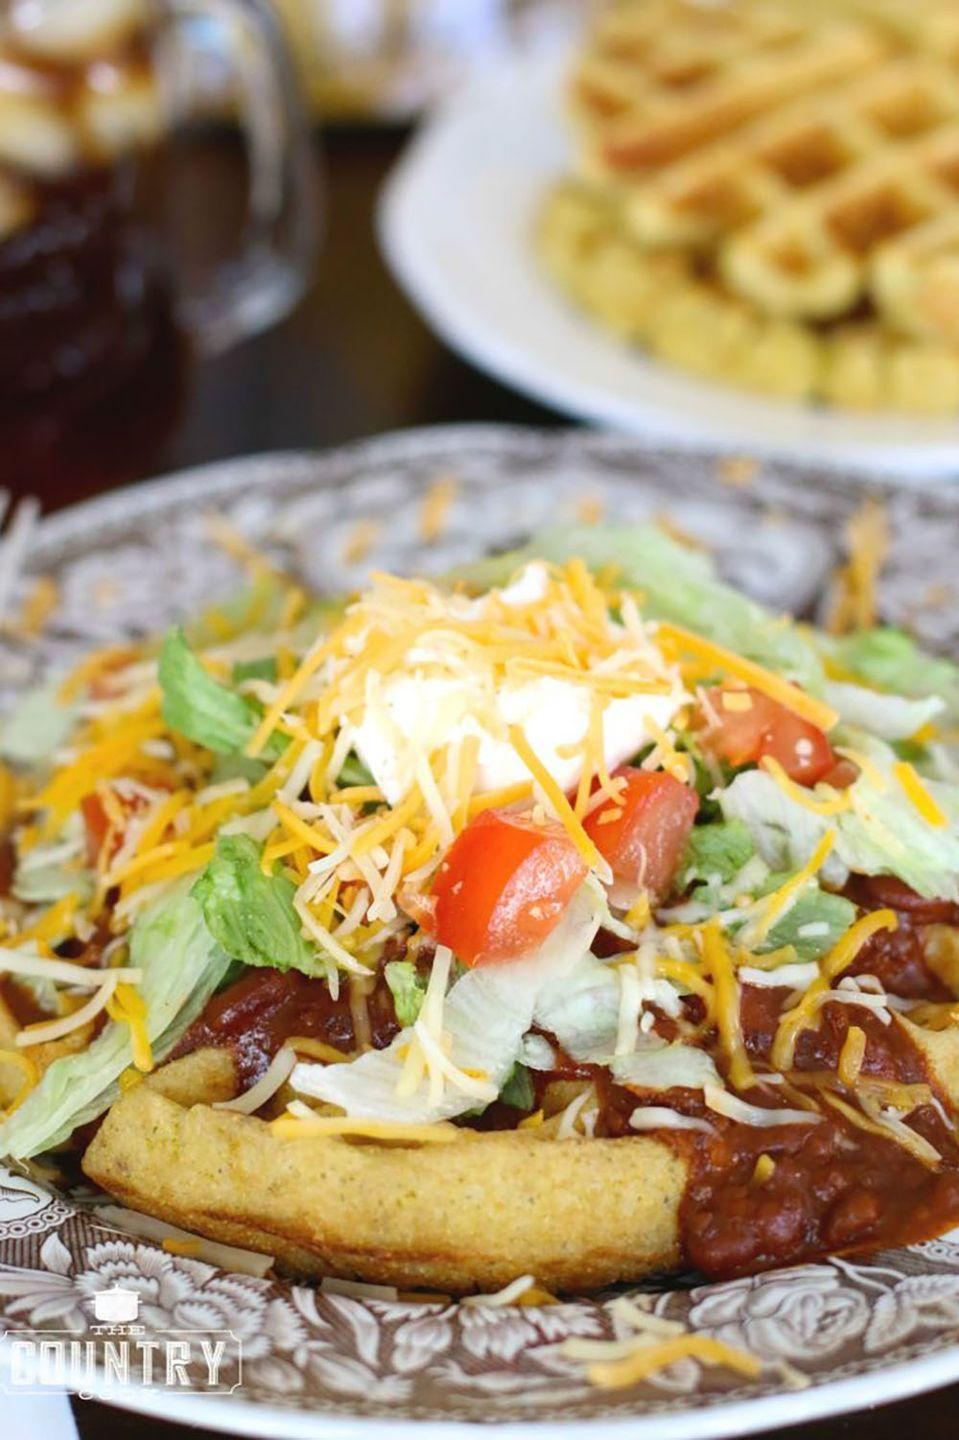 """<p>Switch up breakfast for dinner with some Mexican-style, savory waffles.</p><p><strong>Get the recipe at <a href=""""https://www.thecountrycook.net/cornbread-waffles-with-chili-fixins/"""" rel=""""nofollow noopener"""" target=""""_blank"""" data-ylk=""""slk:The Country Cook"""" class=""""link rapid-noclick-resp"""">The Country Cook</a>.</strong><br></p>"""